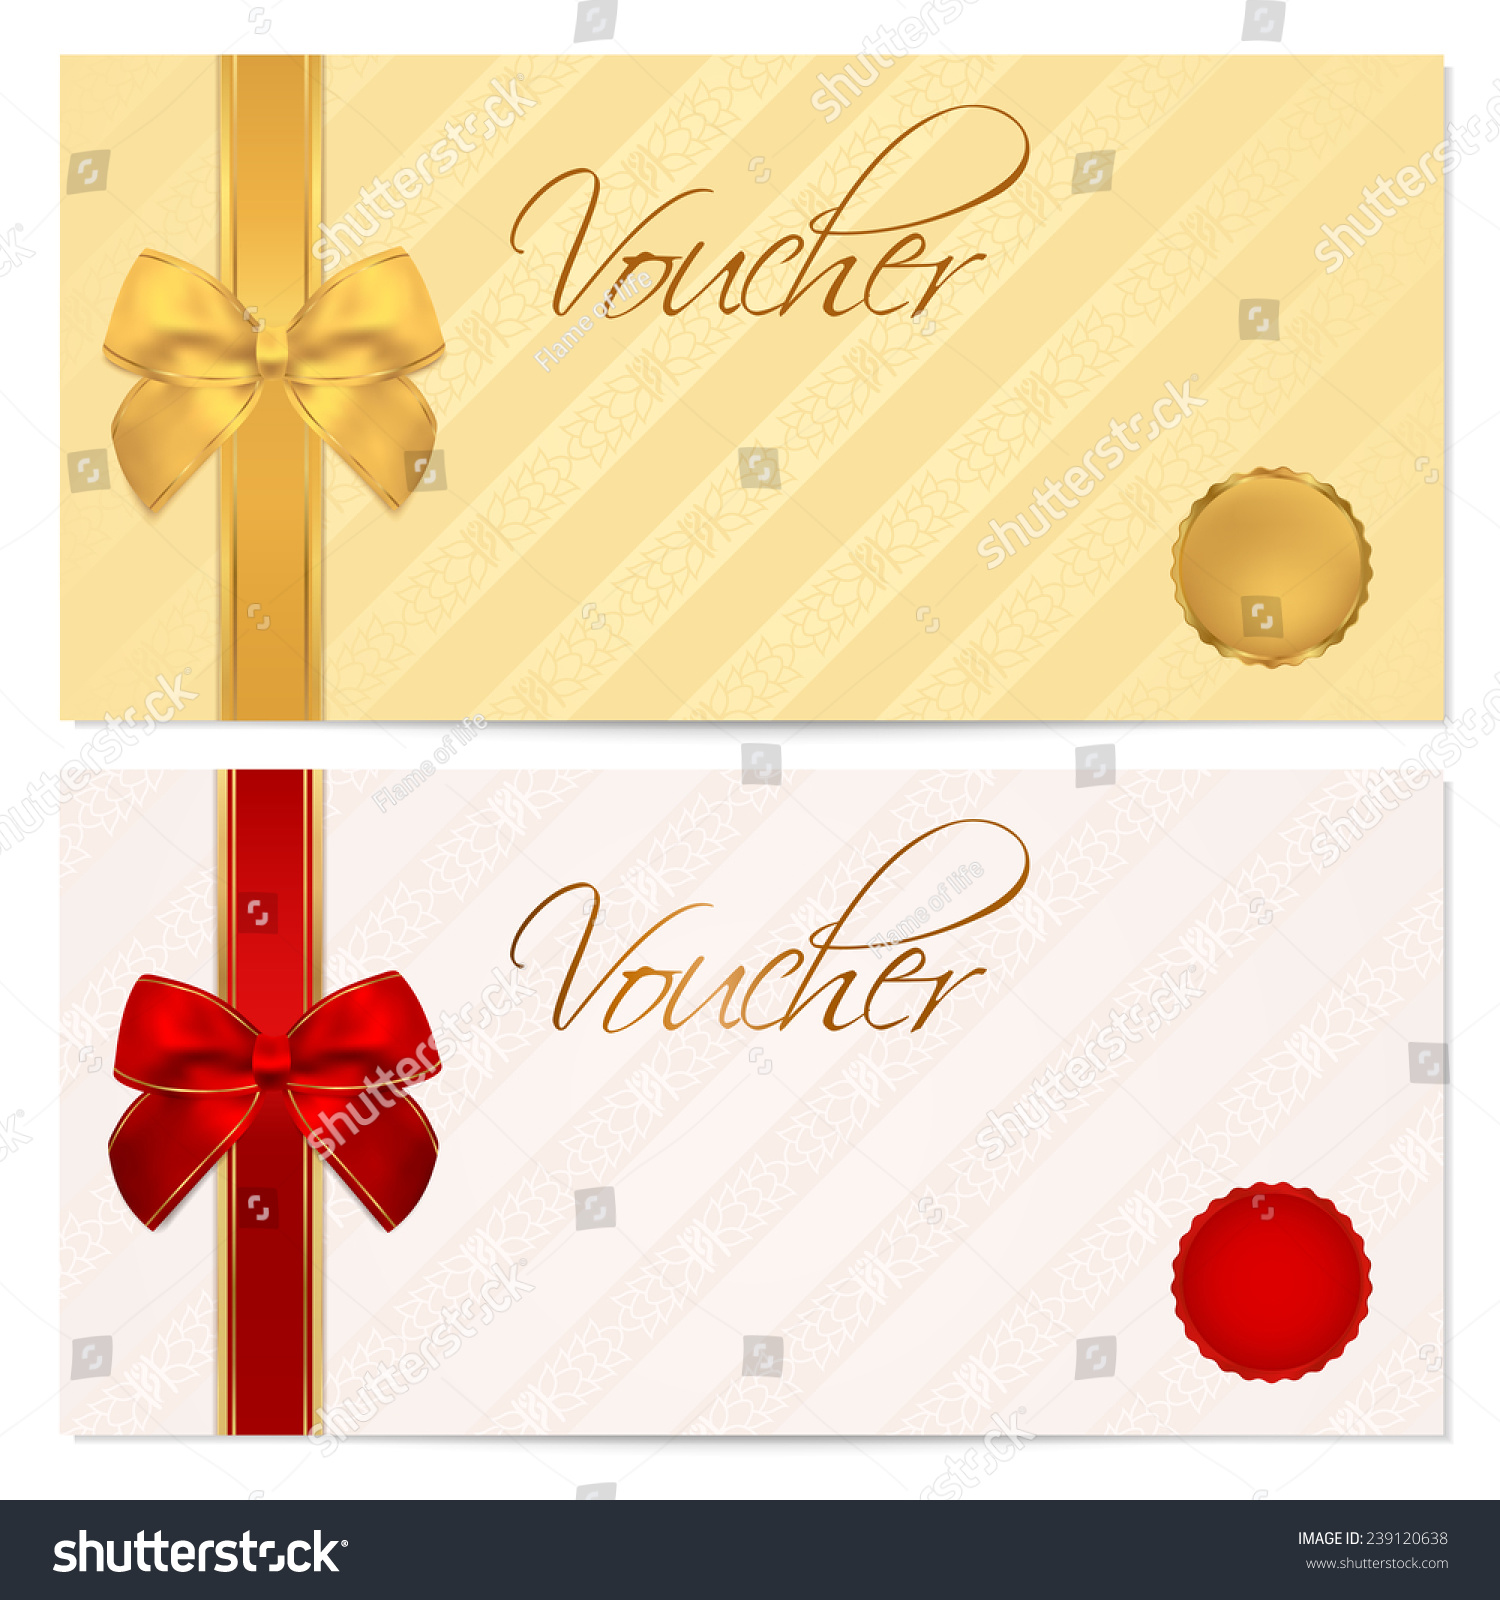 Voucher Gift Certificate Coupon Template Stripe Stock Illustration ...